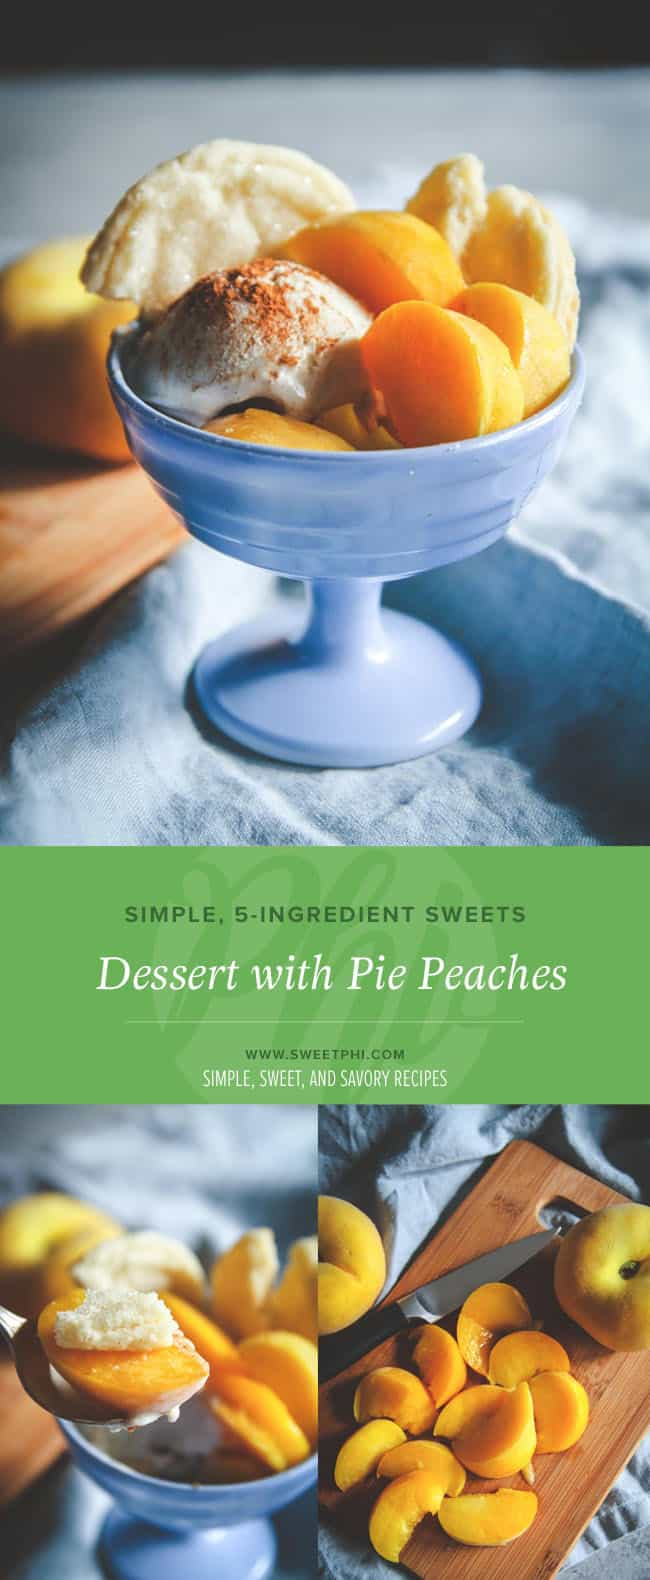 Peaches are the perfect addition to any summer dessert and this recipe is no exception